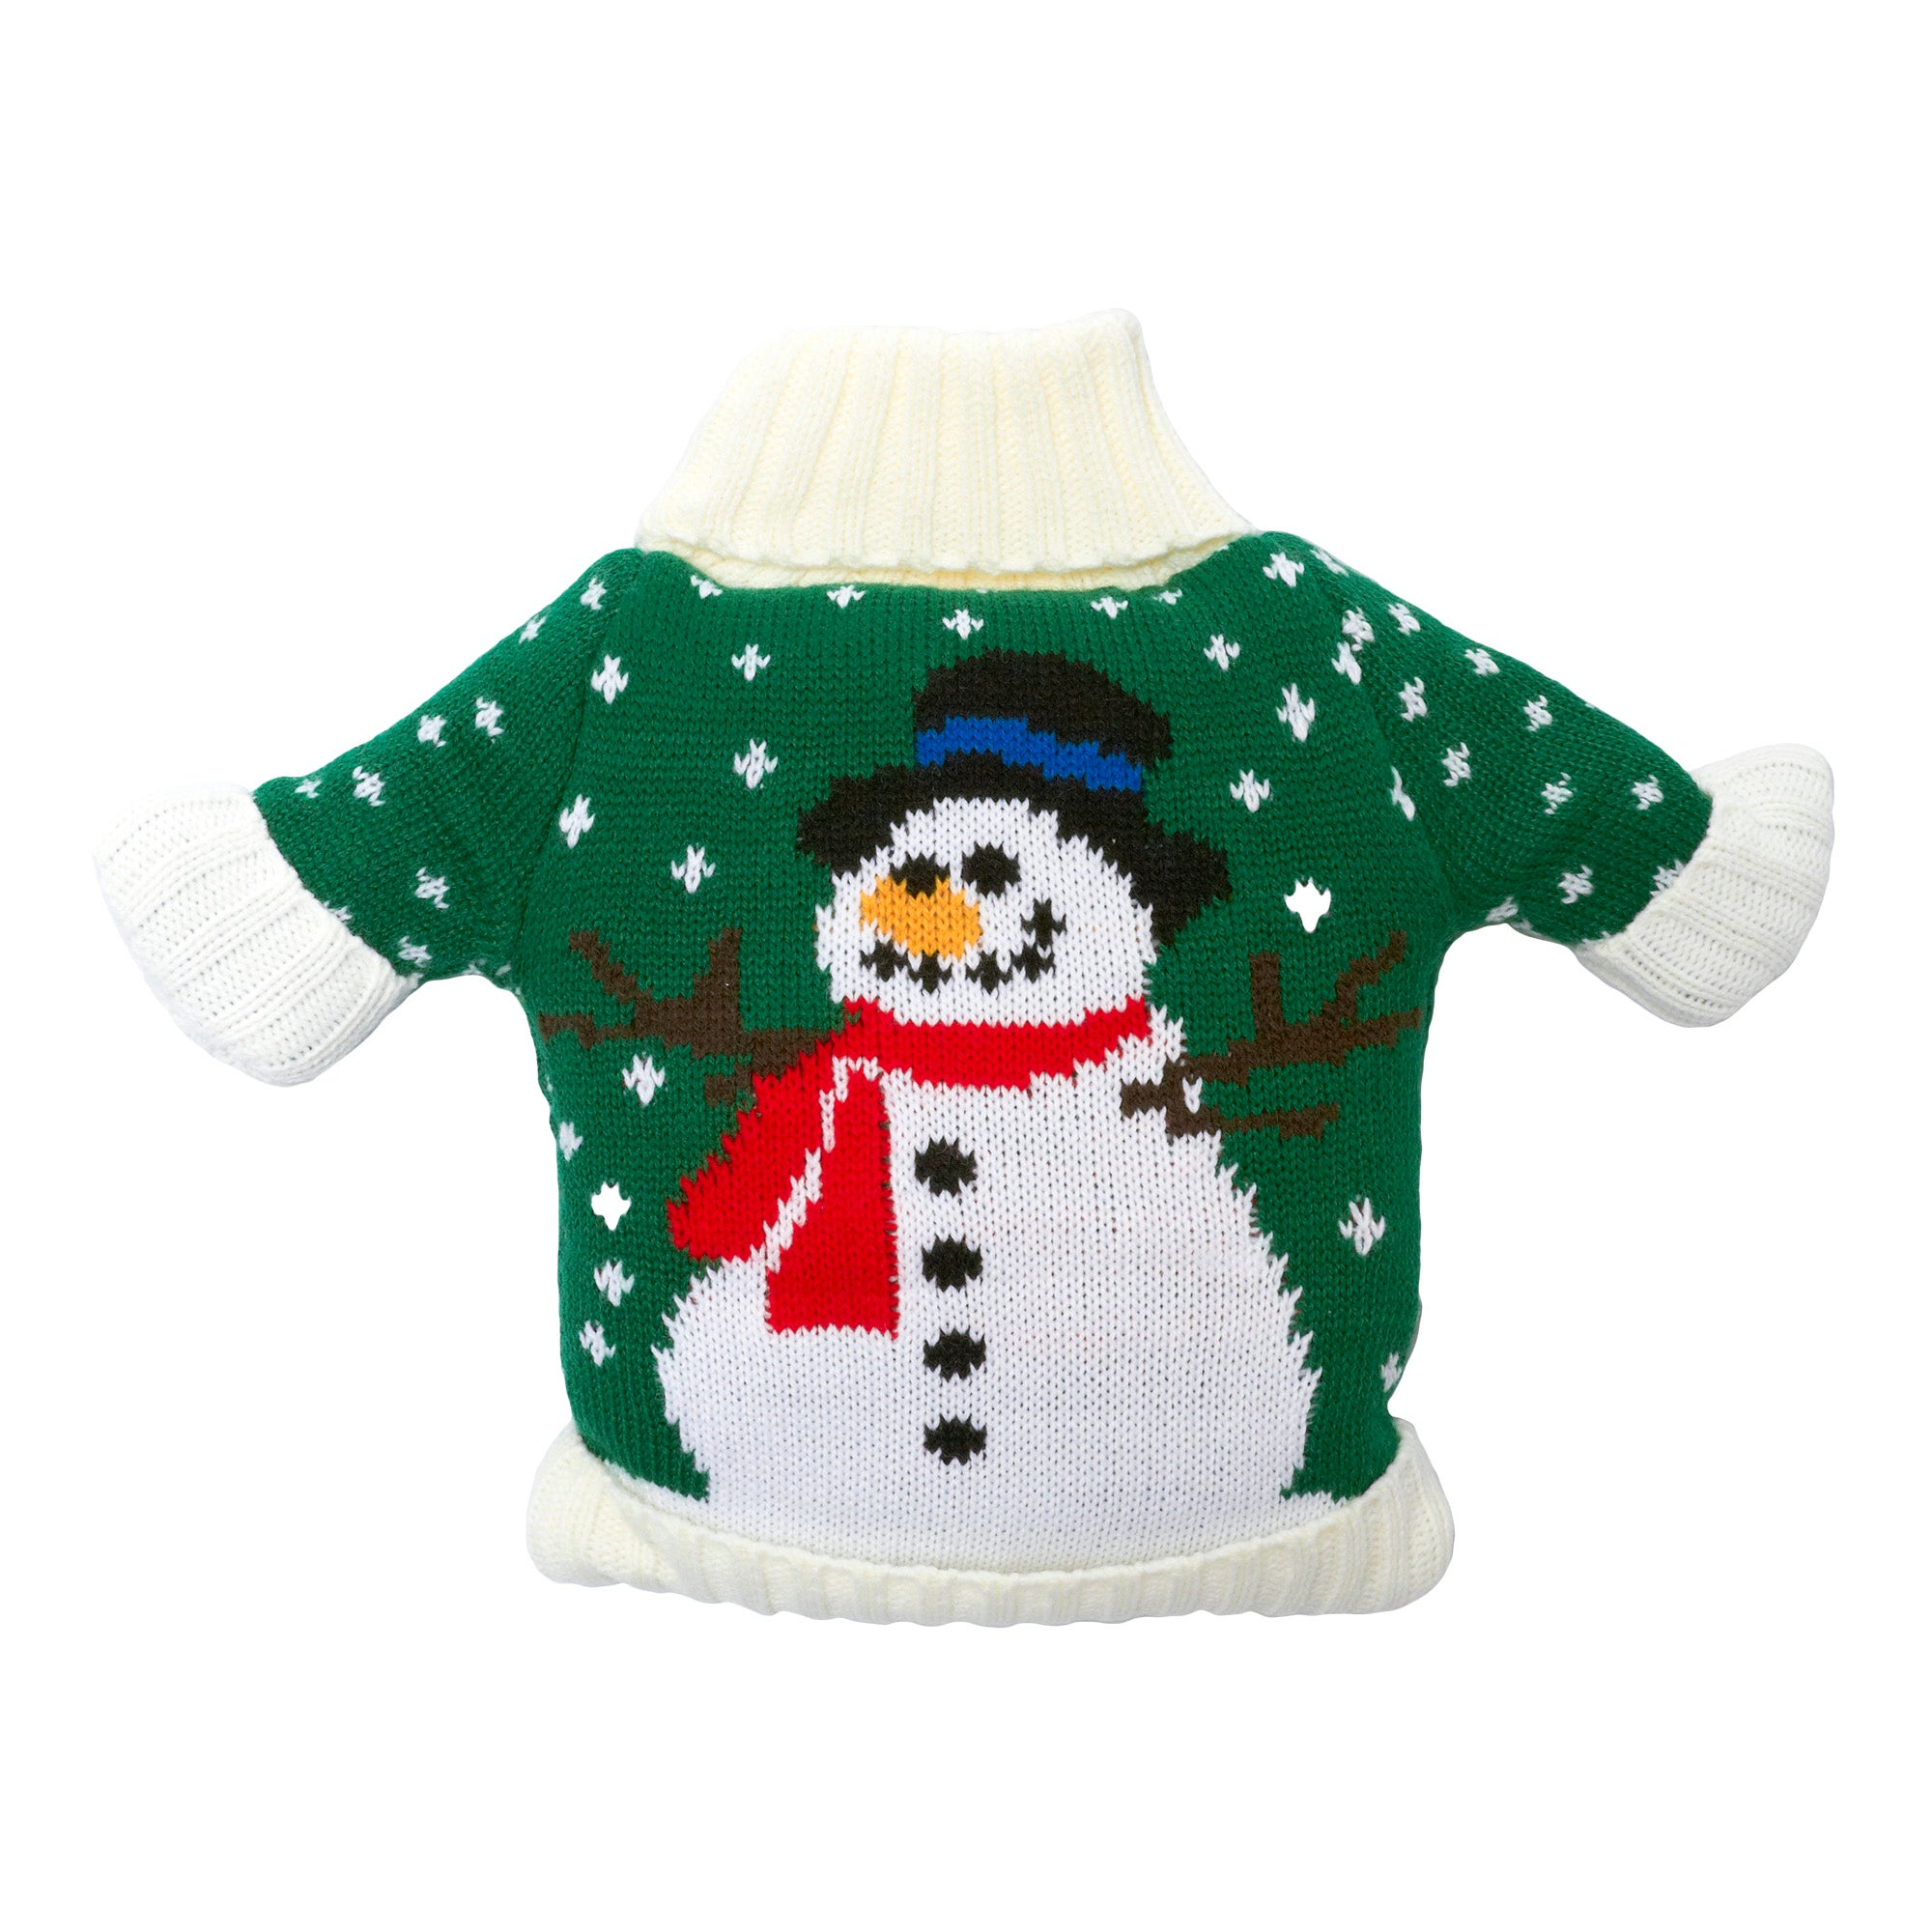 Green Snowman Jumper Microwavable Bean Bag